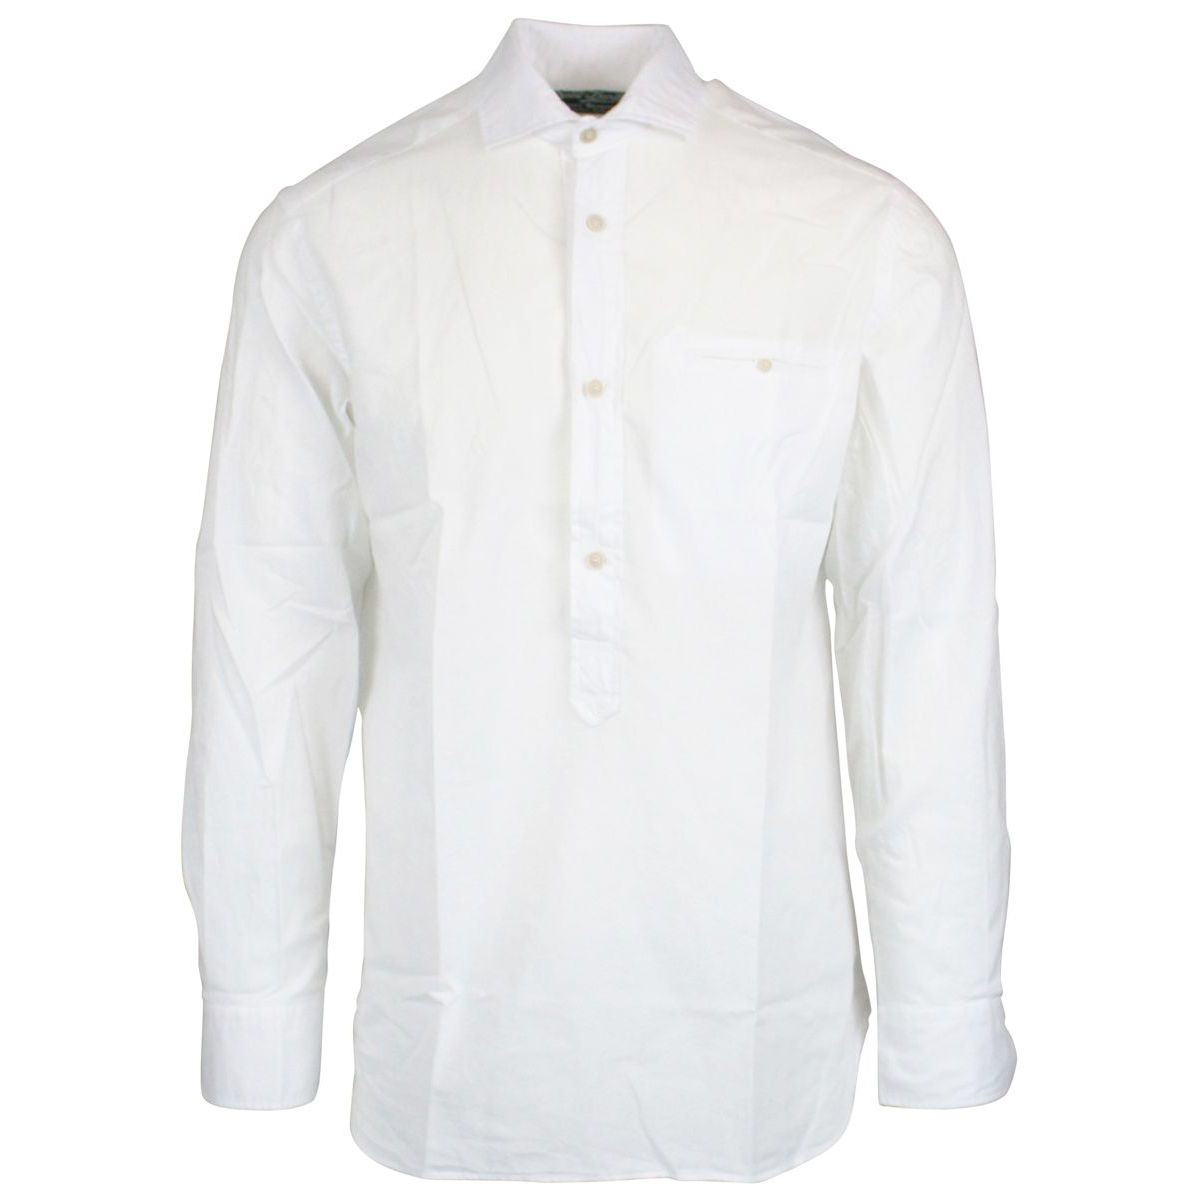 Shirt with French collar in linen White MC2 SAINT BARTH